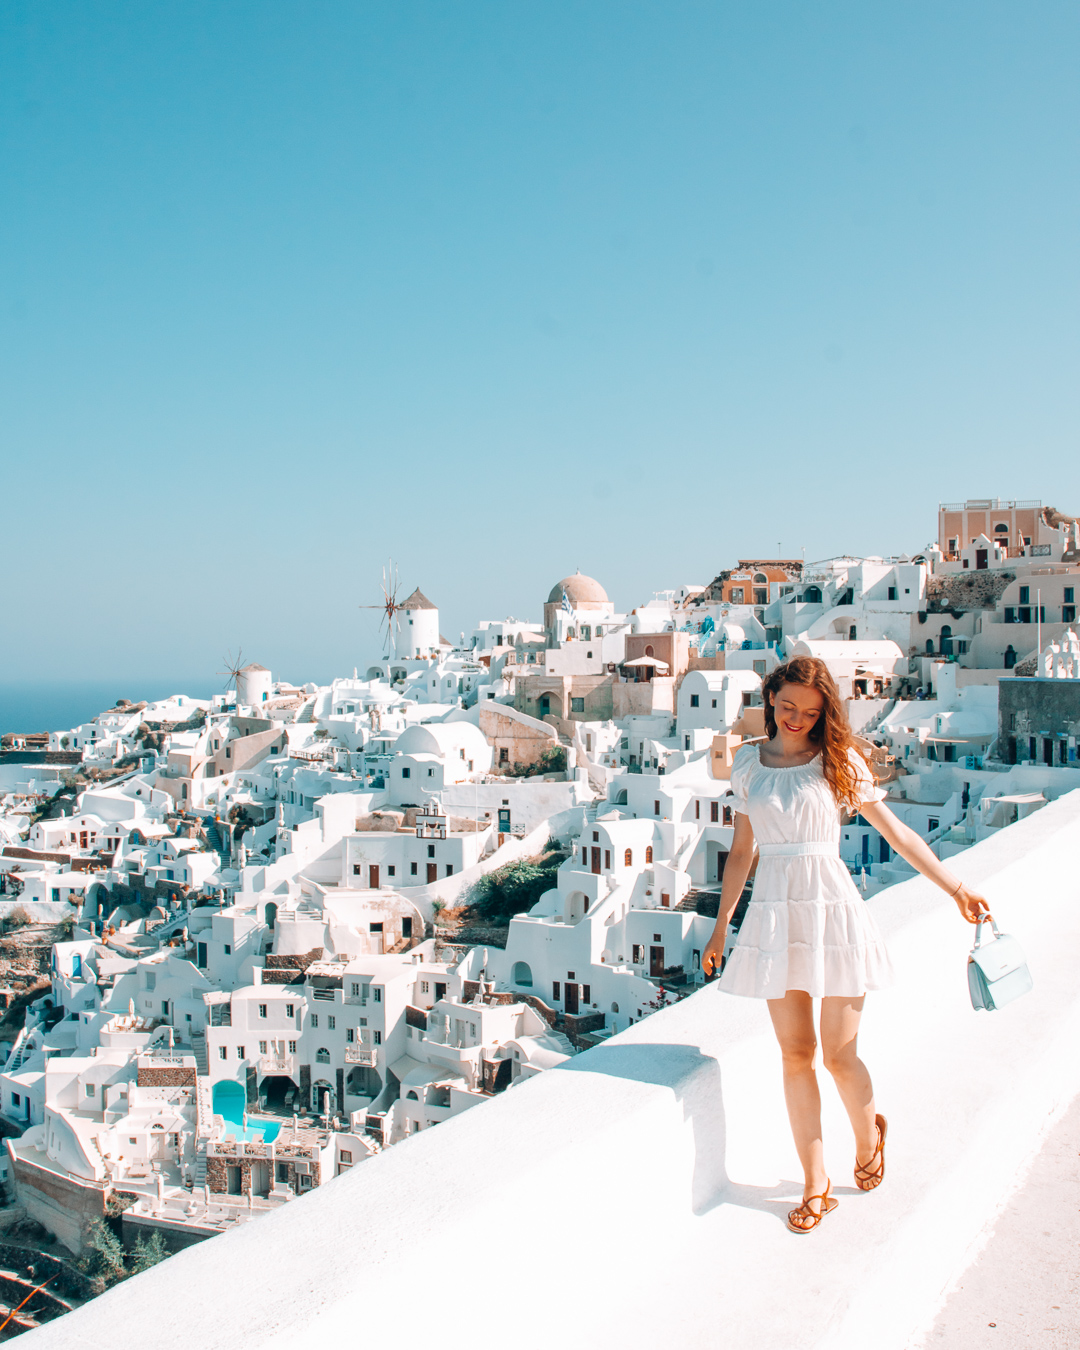 Happy girl at Oia Castle and view of white houses in Santorini